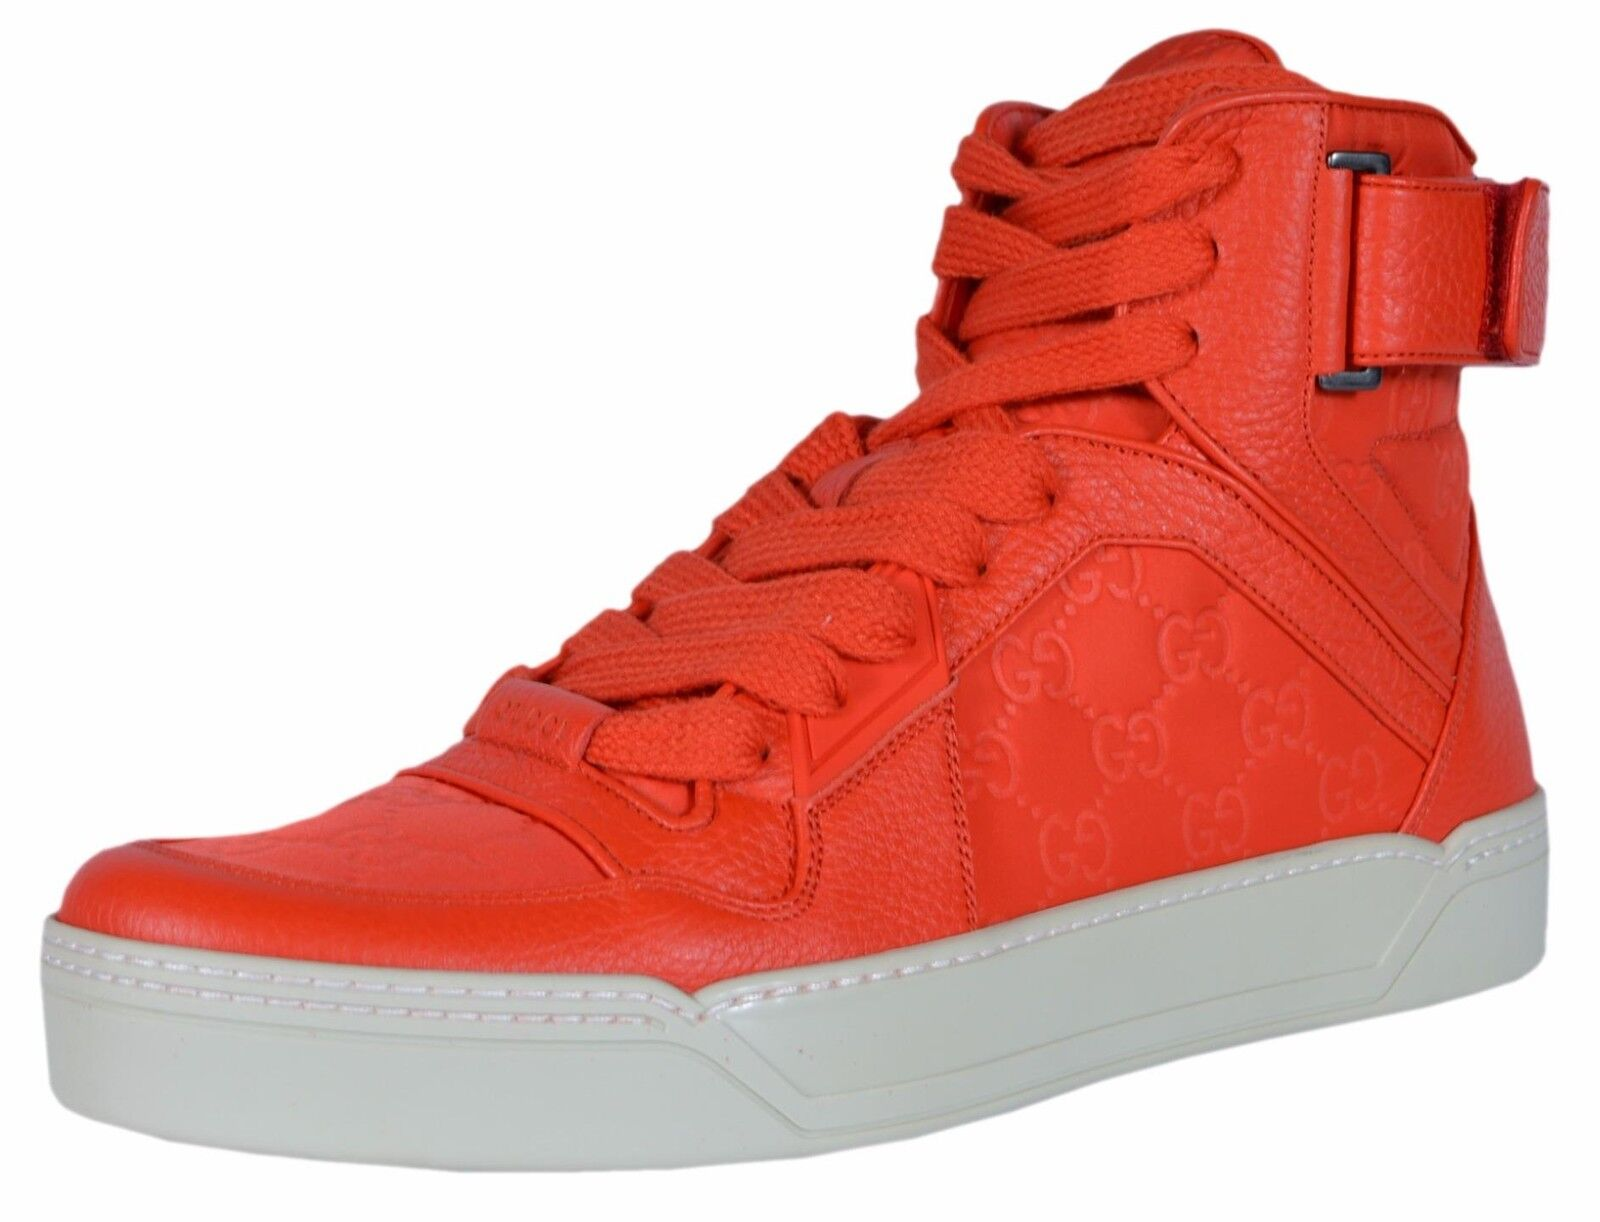 NEW Gucci Men's Red Nylon Leather GG Guccissima High Top Sneakers Shoes